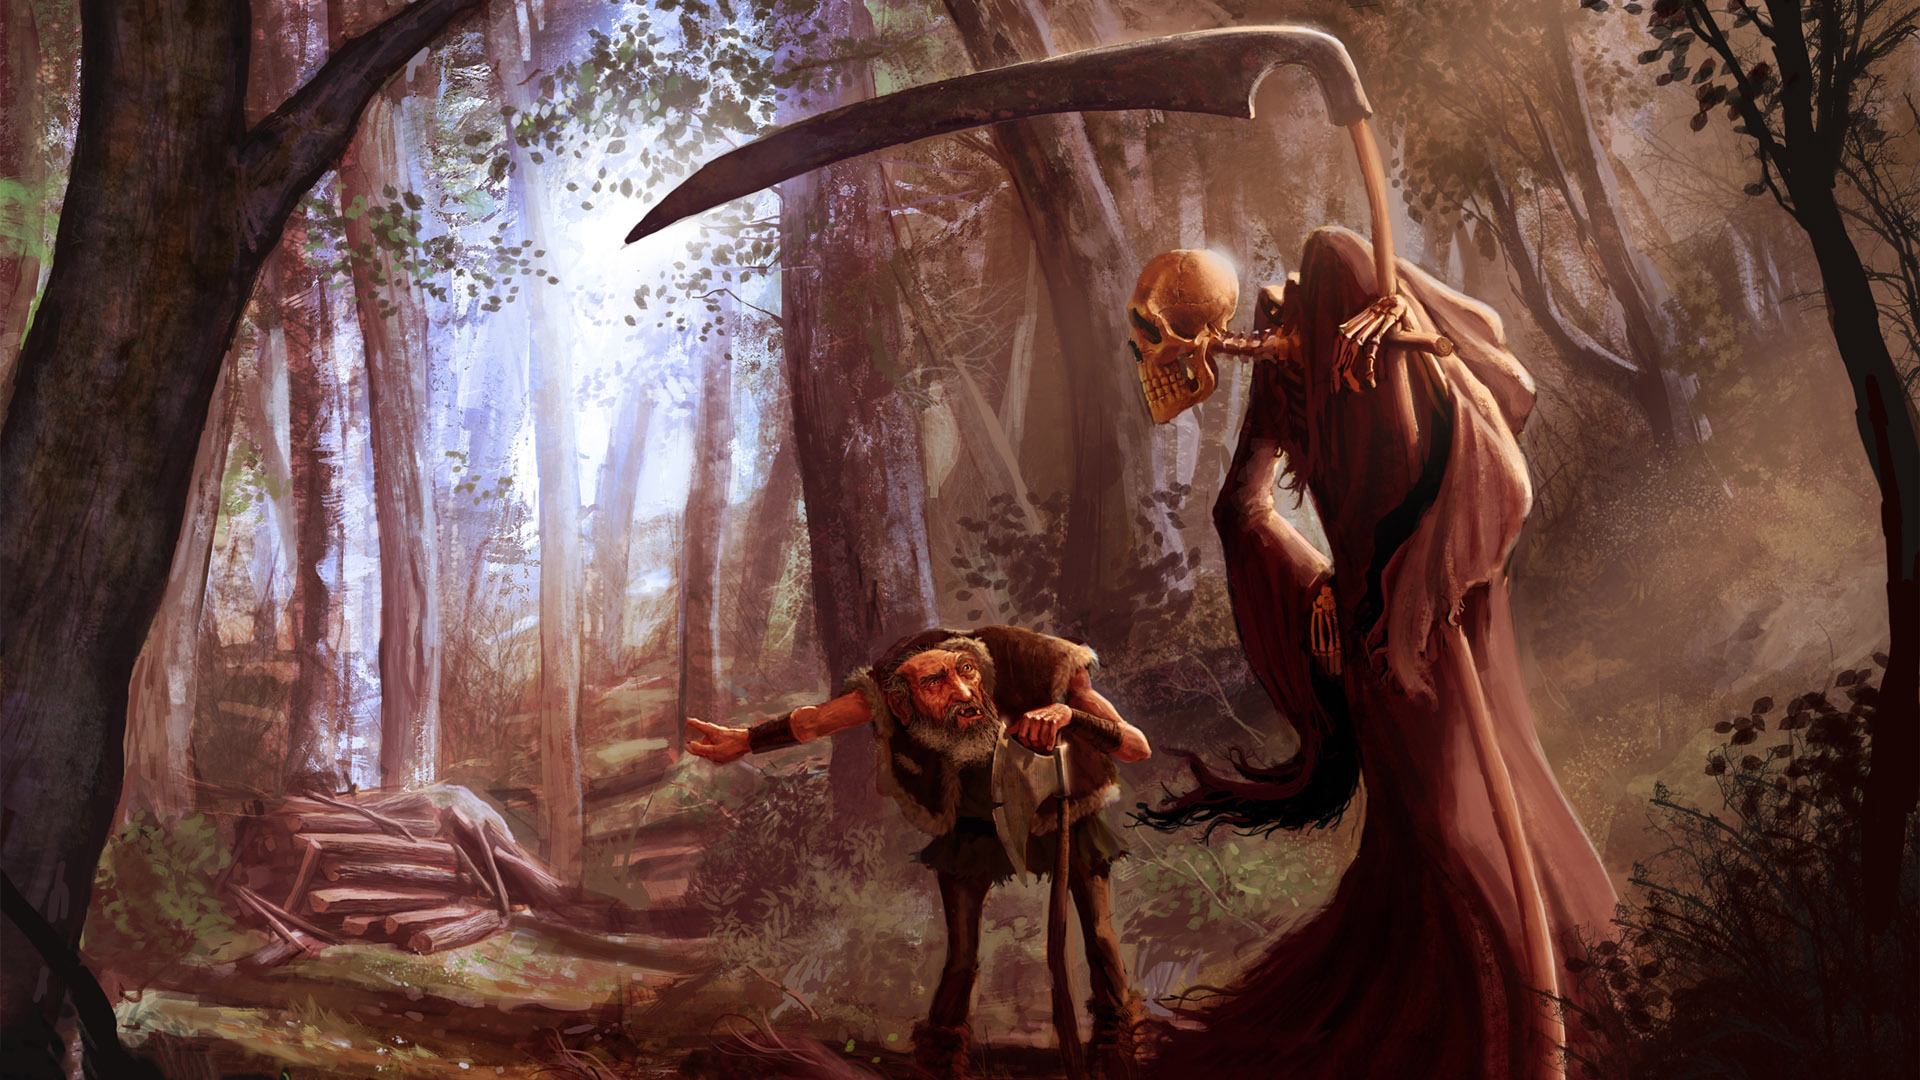 Free Download Death And The Old Man In The Woods Wallpaper 21751 1920x1080 For Your Desktop Mobile Tablet Explore 69 Old Man Wallpaper Old Man Wallpaper Old Wallpaper Old Wallpapers